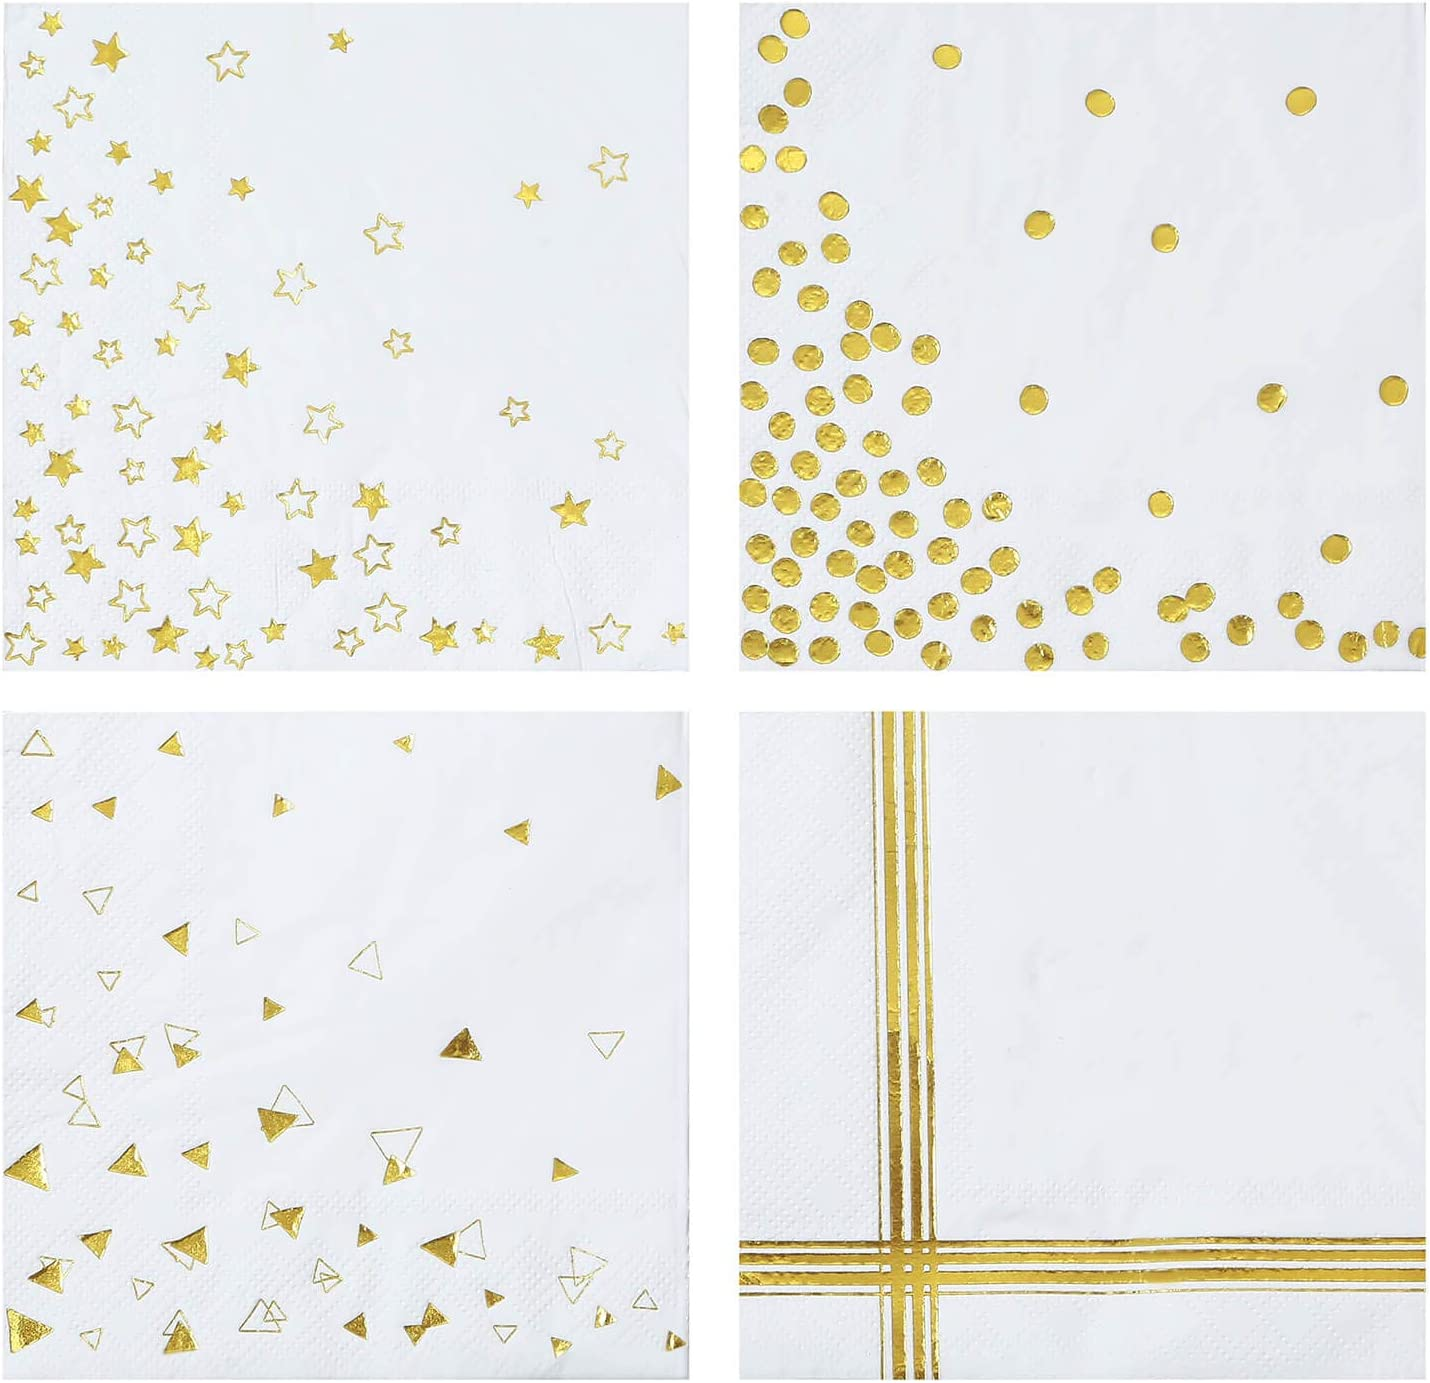 Gexolenu Shiny Gold Foil Cocktail Napkins,- Decorative Paper beverage Dot Star Napkins, , Perfect for Wedding table decoration, Birthdays & Anniversary Parties, Daily Use(3-ply, 100 Pack,10